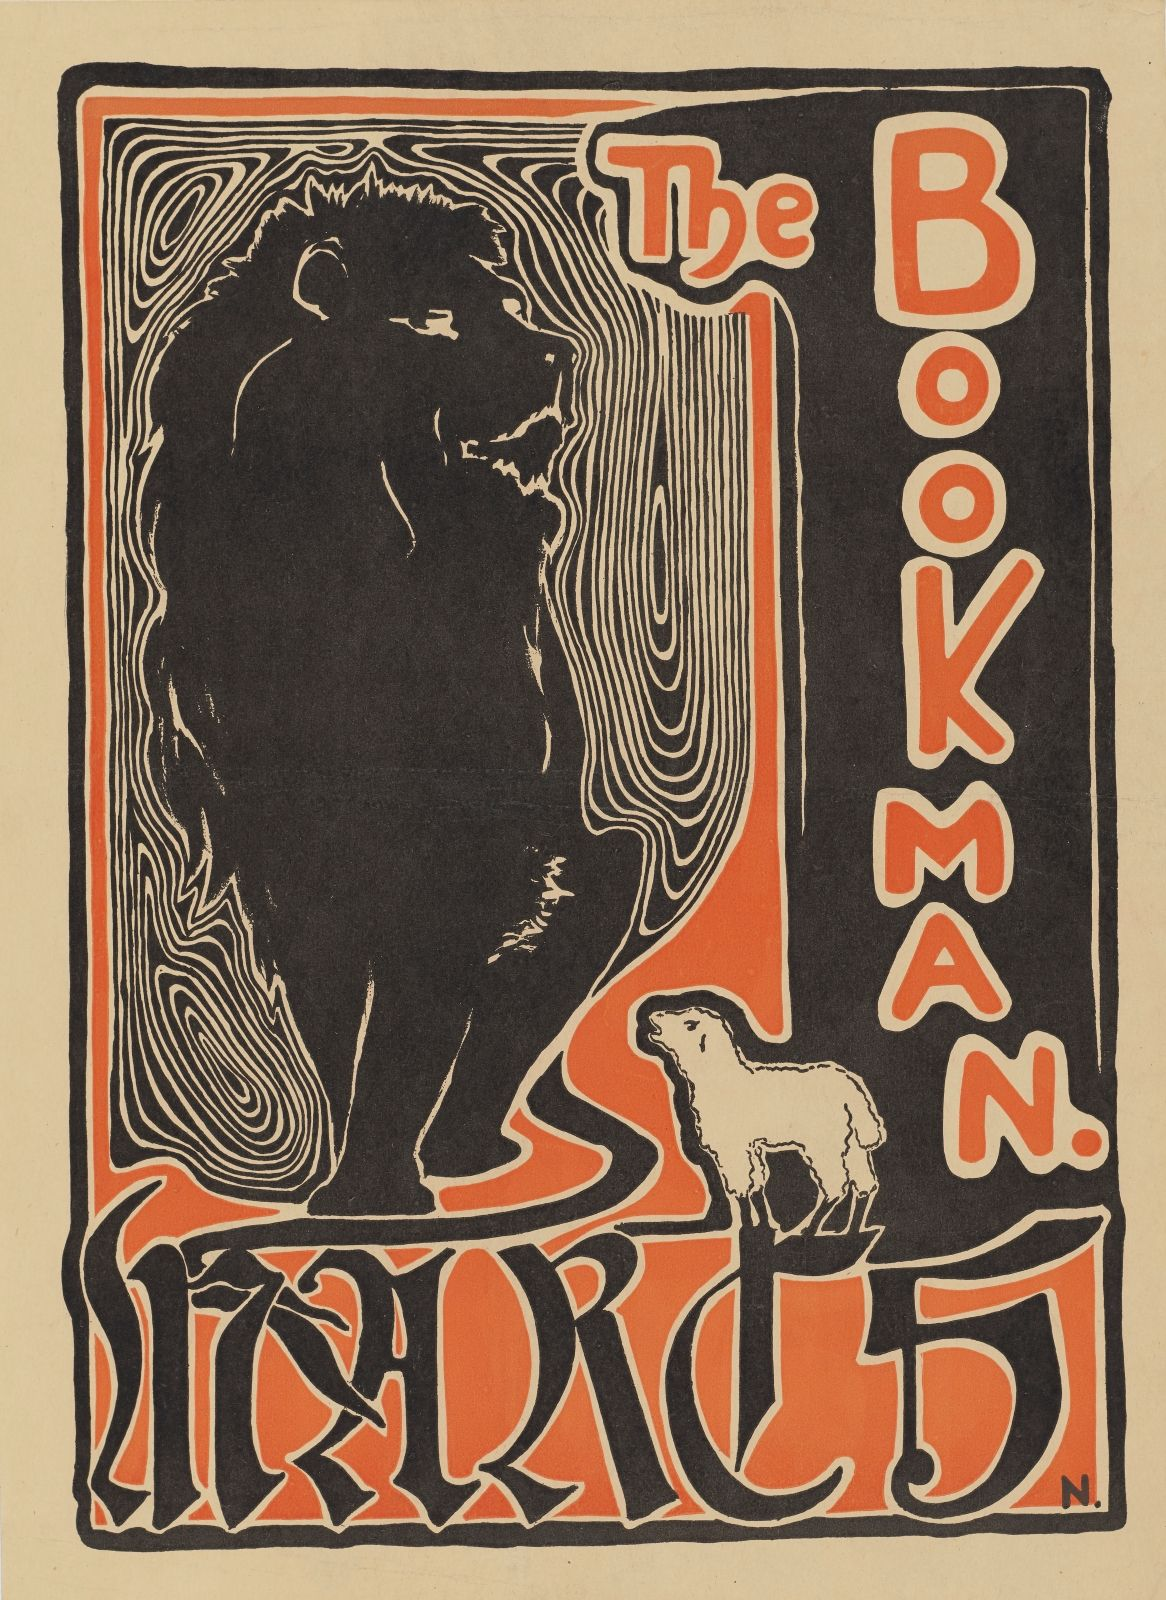 "The Bookman: March, M.E. Norton, sheet: 16 ¼ x 11 5/8 inches, lithograph. A portrait-oriented print depicting a large lion and a small lamb with name of the publication, ""The Bookman."" and date, ""March 5"" in prominent lettering. At right, the words ""The Bookman."" appear in orange lettering surrounded in cream on black background. The word ""The"" is positioned just to the right of center of center and the word ""Bookman."" runs vertically along the right side. Along the bottom the date ""March 5"" appears in elaborate black Old English, calligraphic font outlined in cream, on an orange ground. The left two thirds of the upper portion of the print is taken up by a depiction of a lion pictured head on. It is black with white line delineating facial features and limbs. Surrounding the lion are undulating white lines on black ground that mimic wood grain and knots. The lion's tail wraps around its feet and intrudes on the date printed below. At the lion's feet at right is a small white lamb with black detailing, viewed from the side with its mouth open. A small capital letter ""N."" is located at the extreme lower right corner. A narrow black outline surrounds the images."